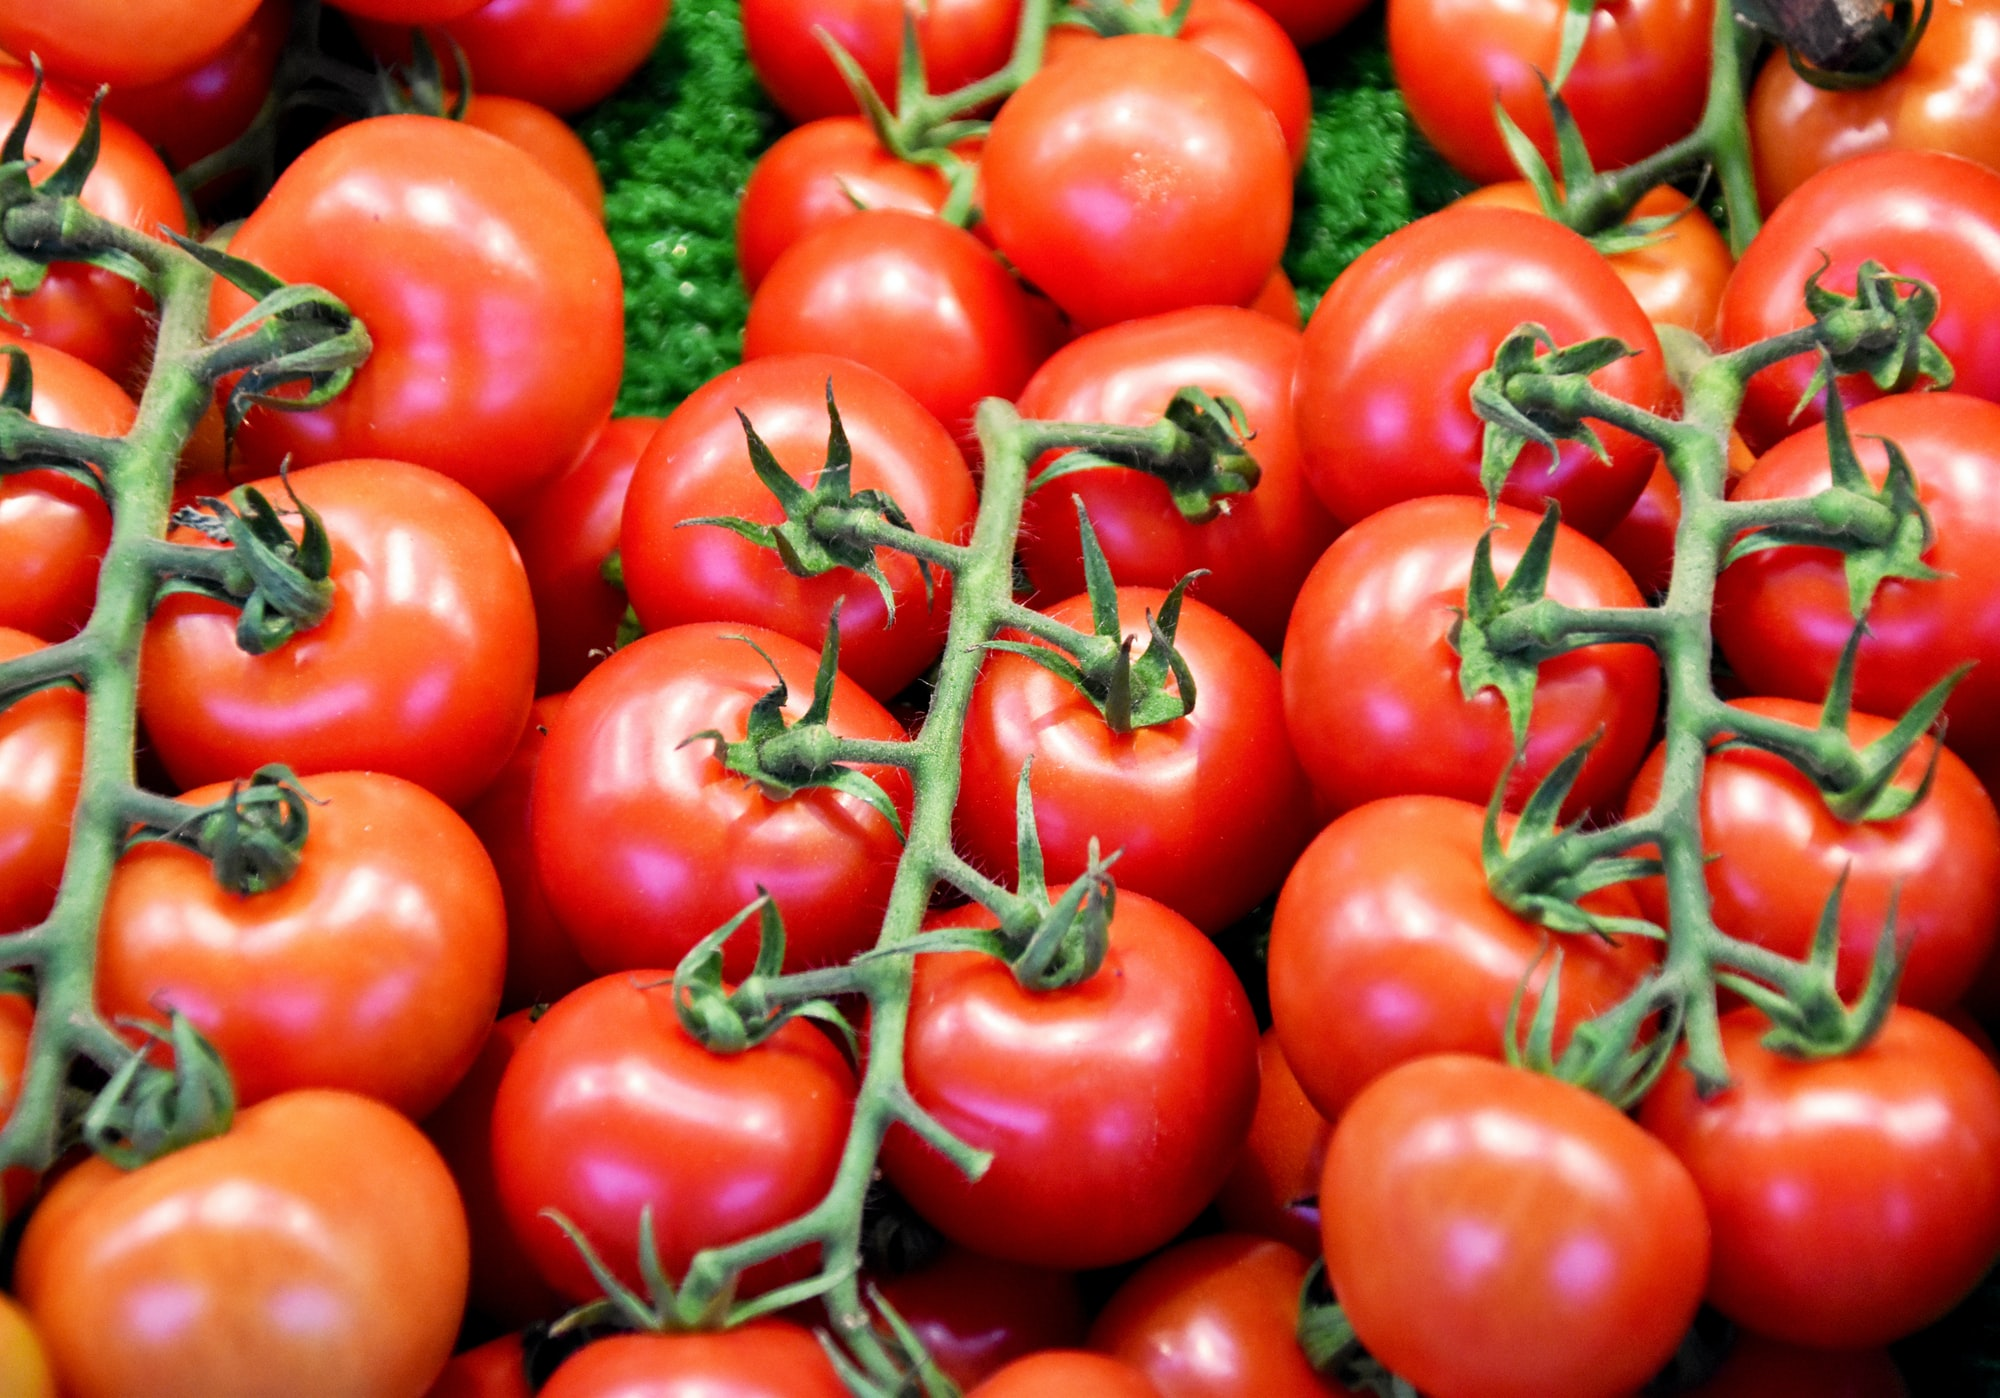 red tomatoes at the market stand